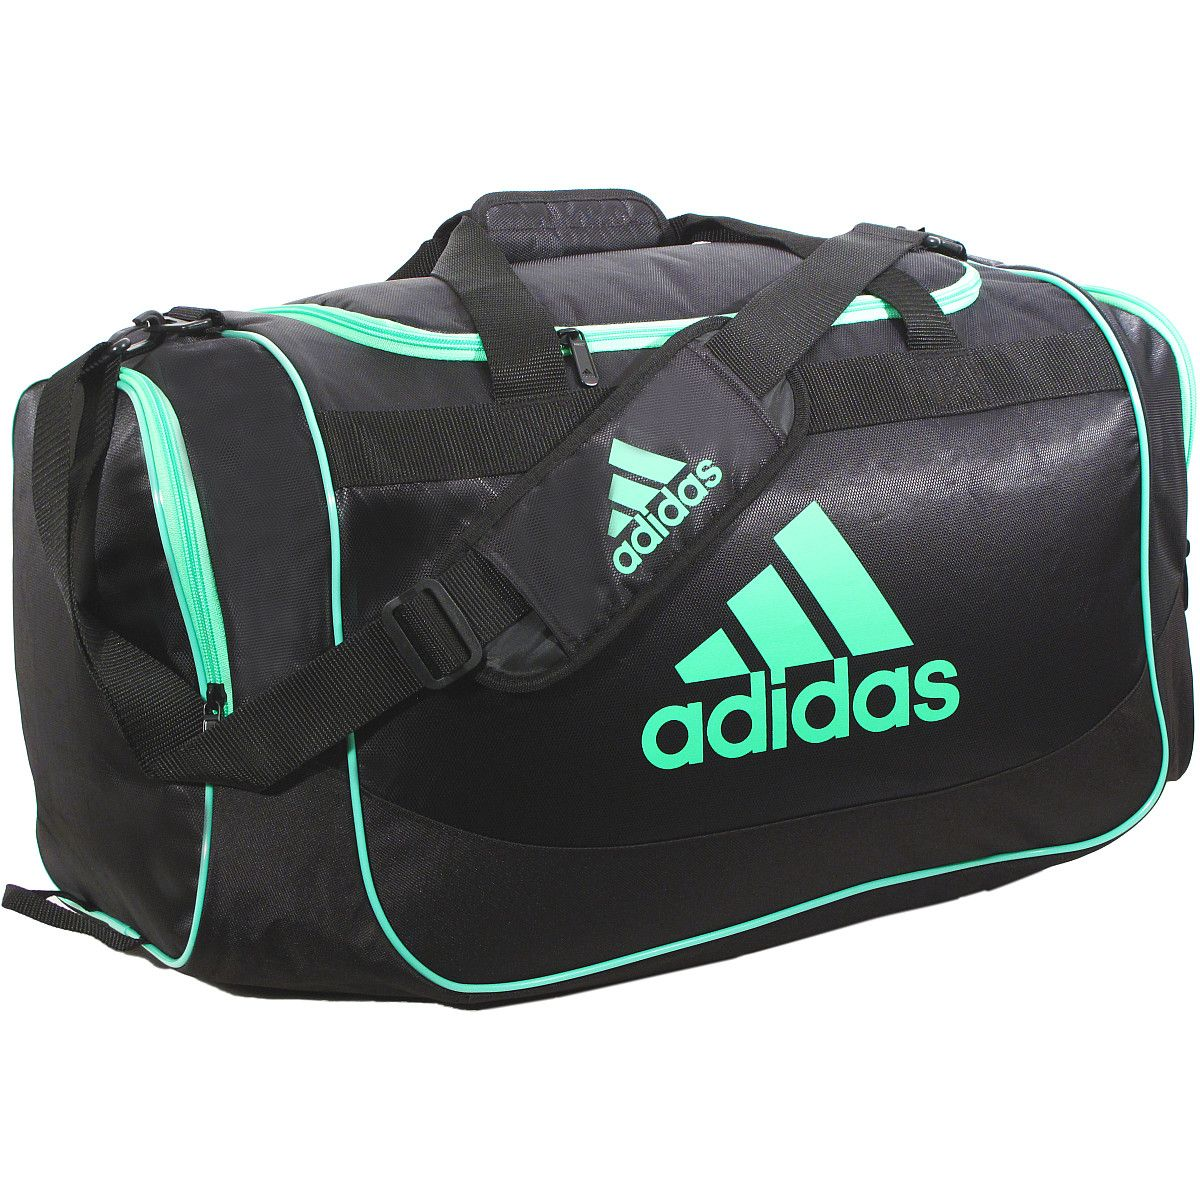 aa9e7b57f adidas Defender Duffle Bag - Medium - SportsAuthority.com | Adidas ...